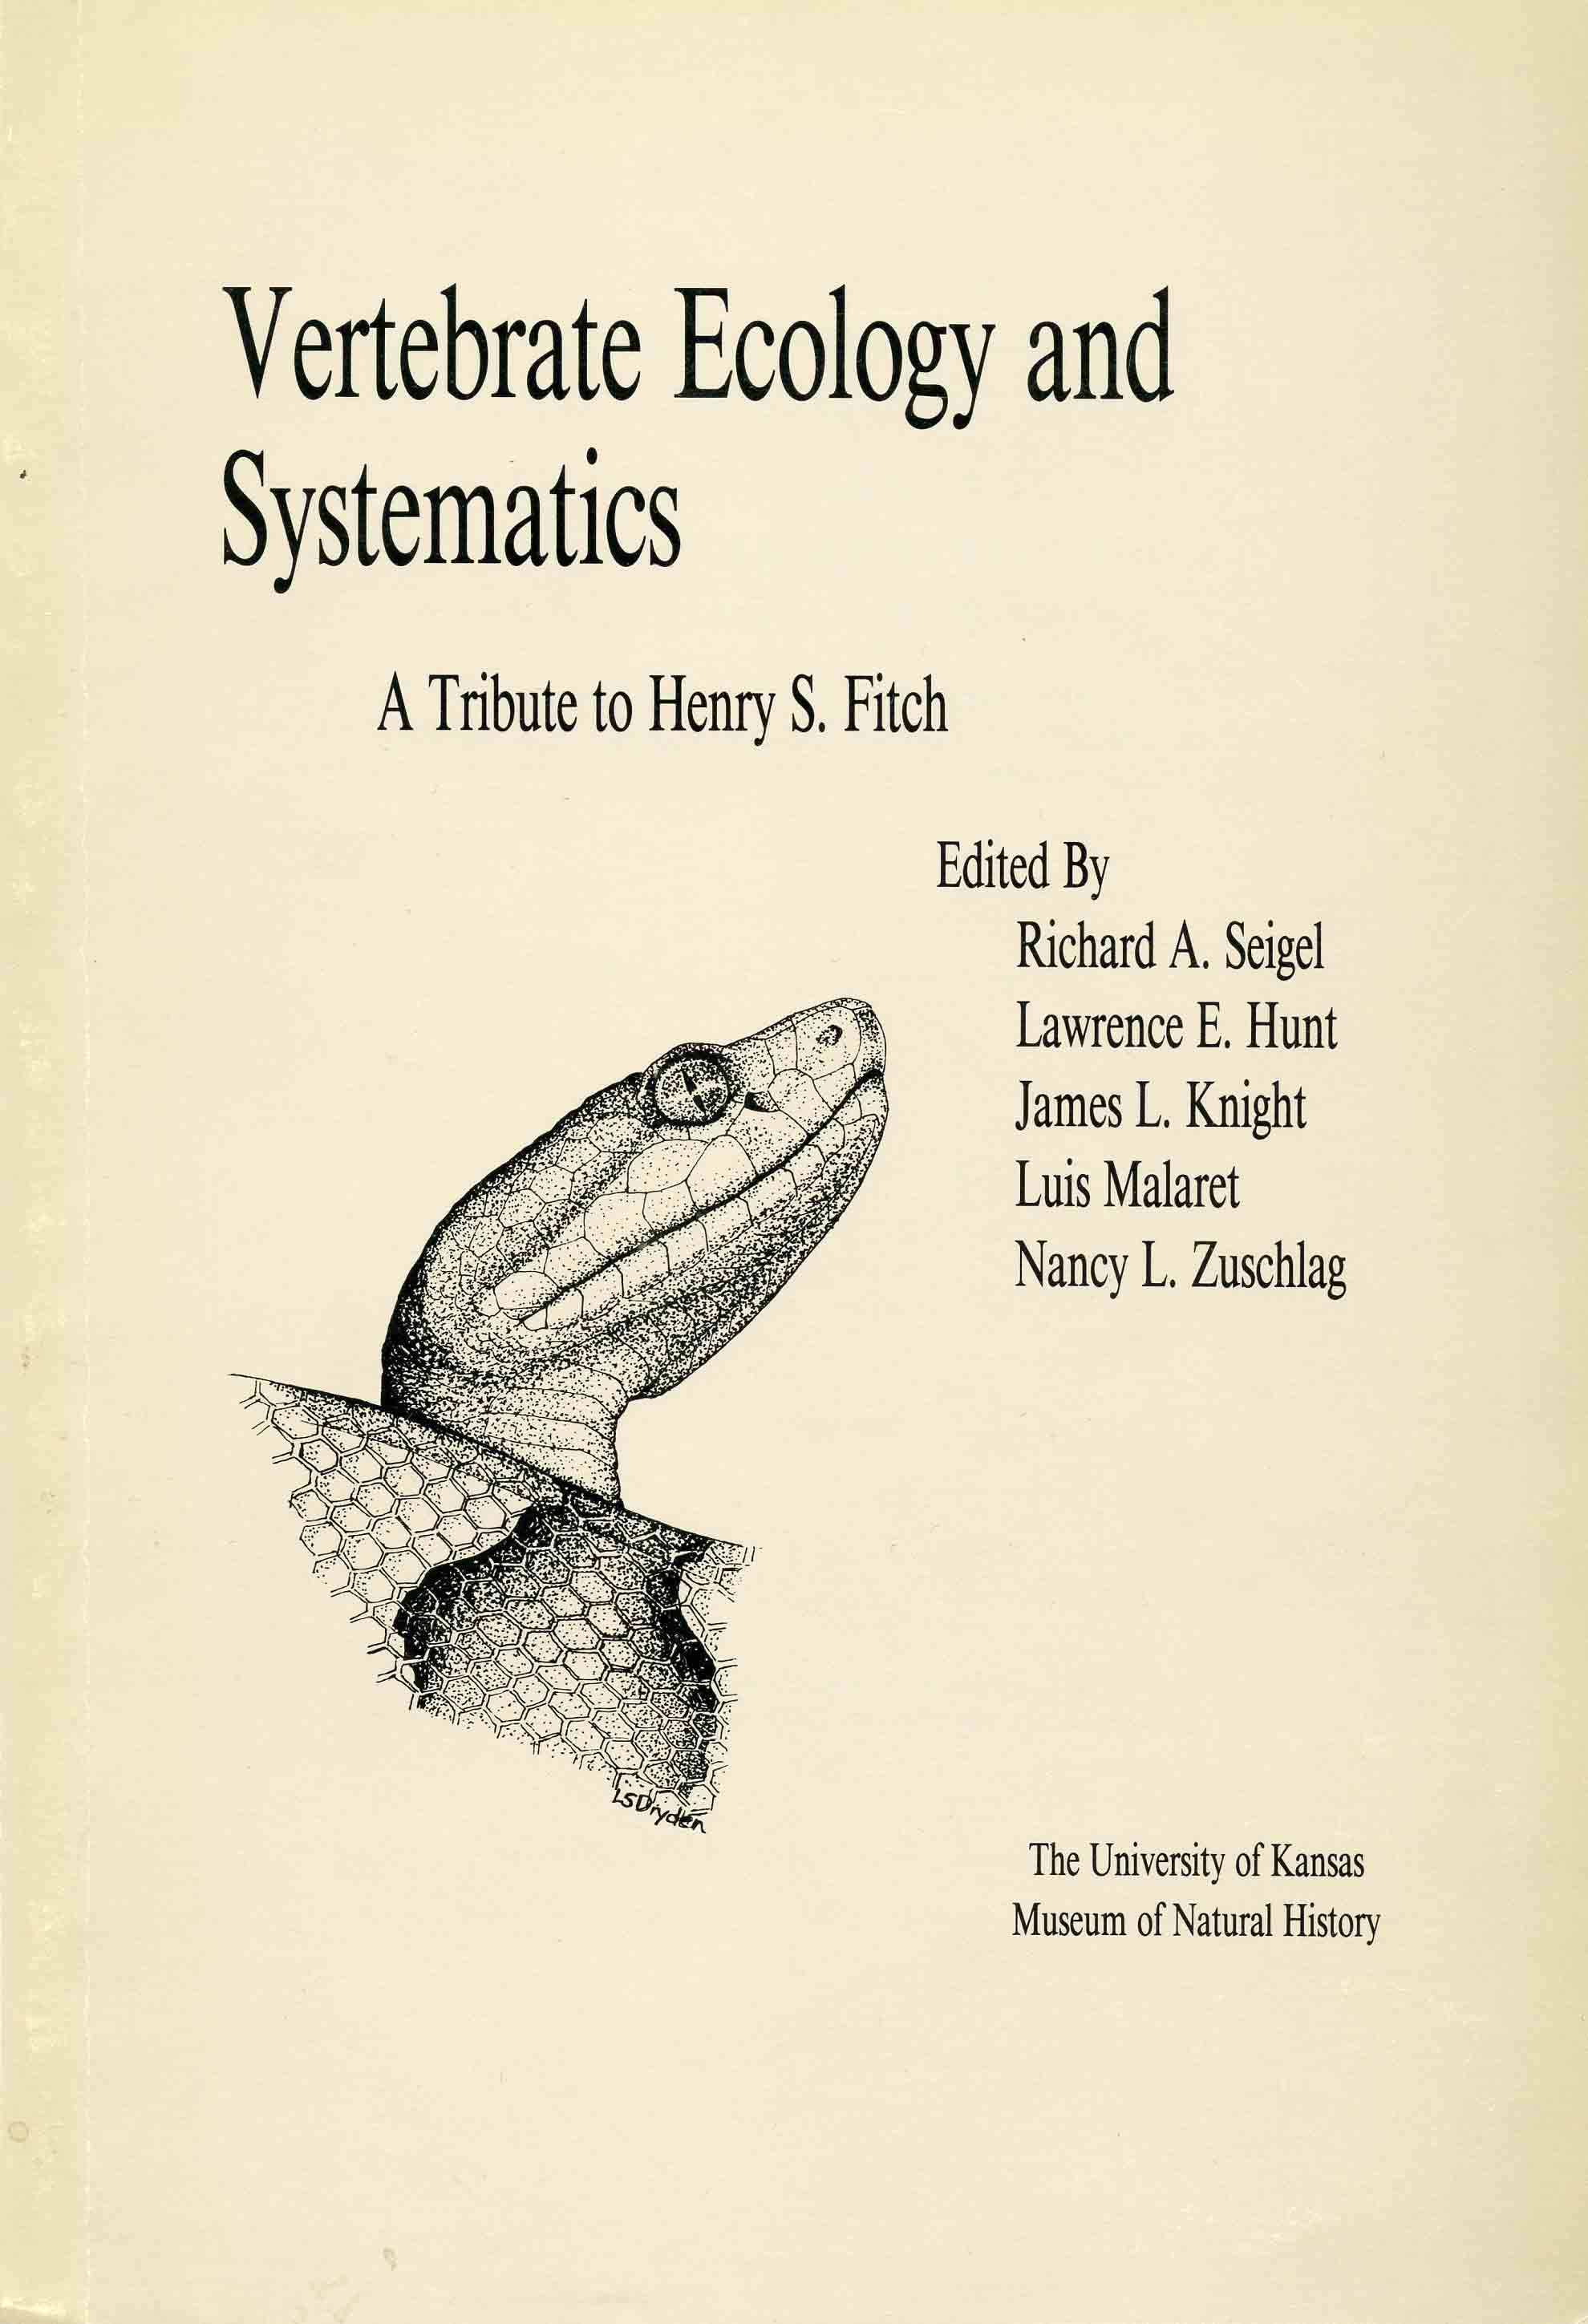 Image for Vertebrate Ecology and Systematics: A Tribute to Henry S. Fitch